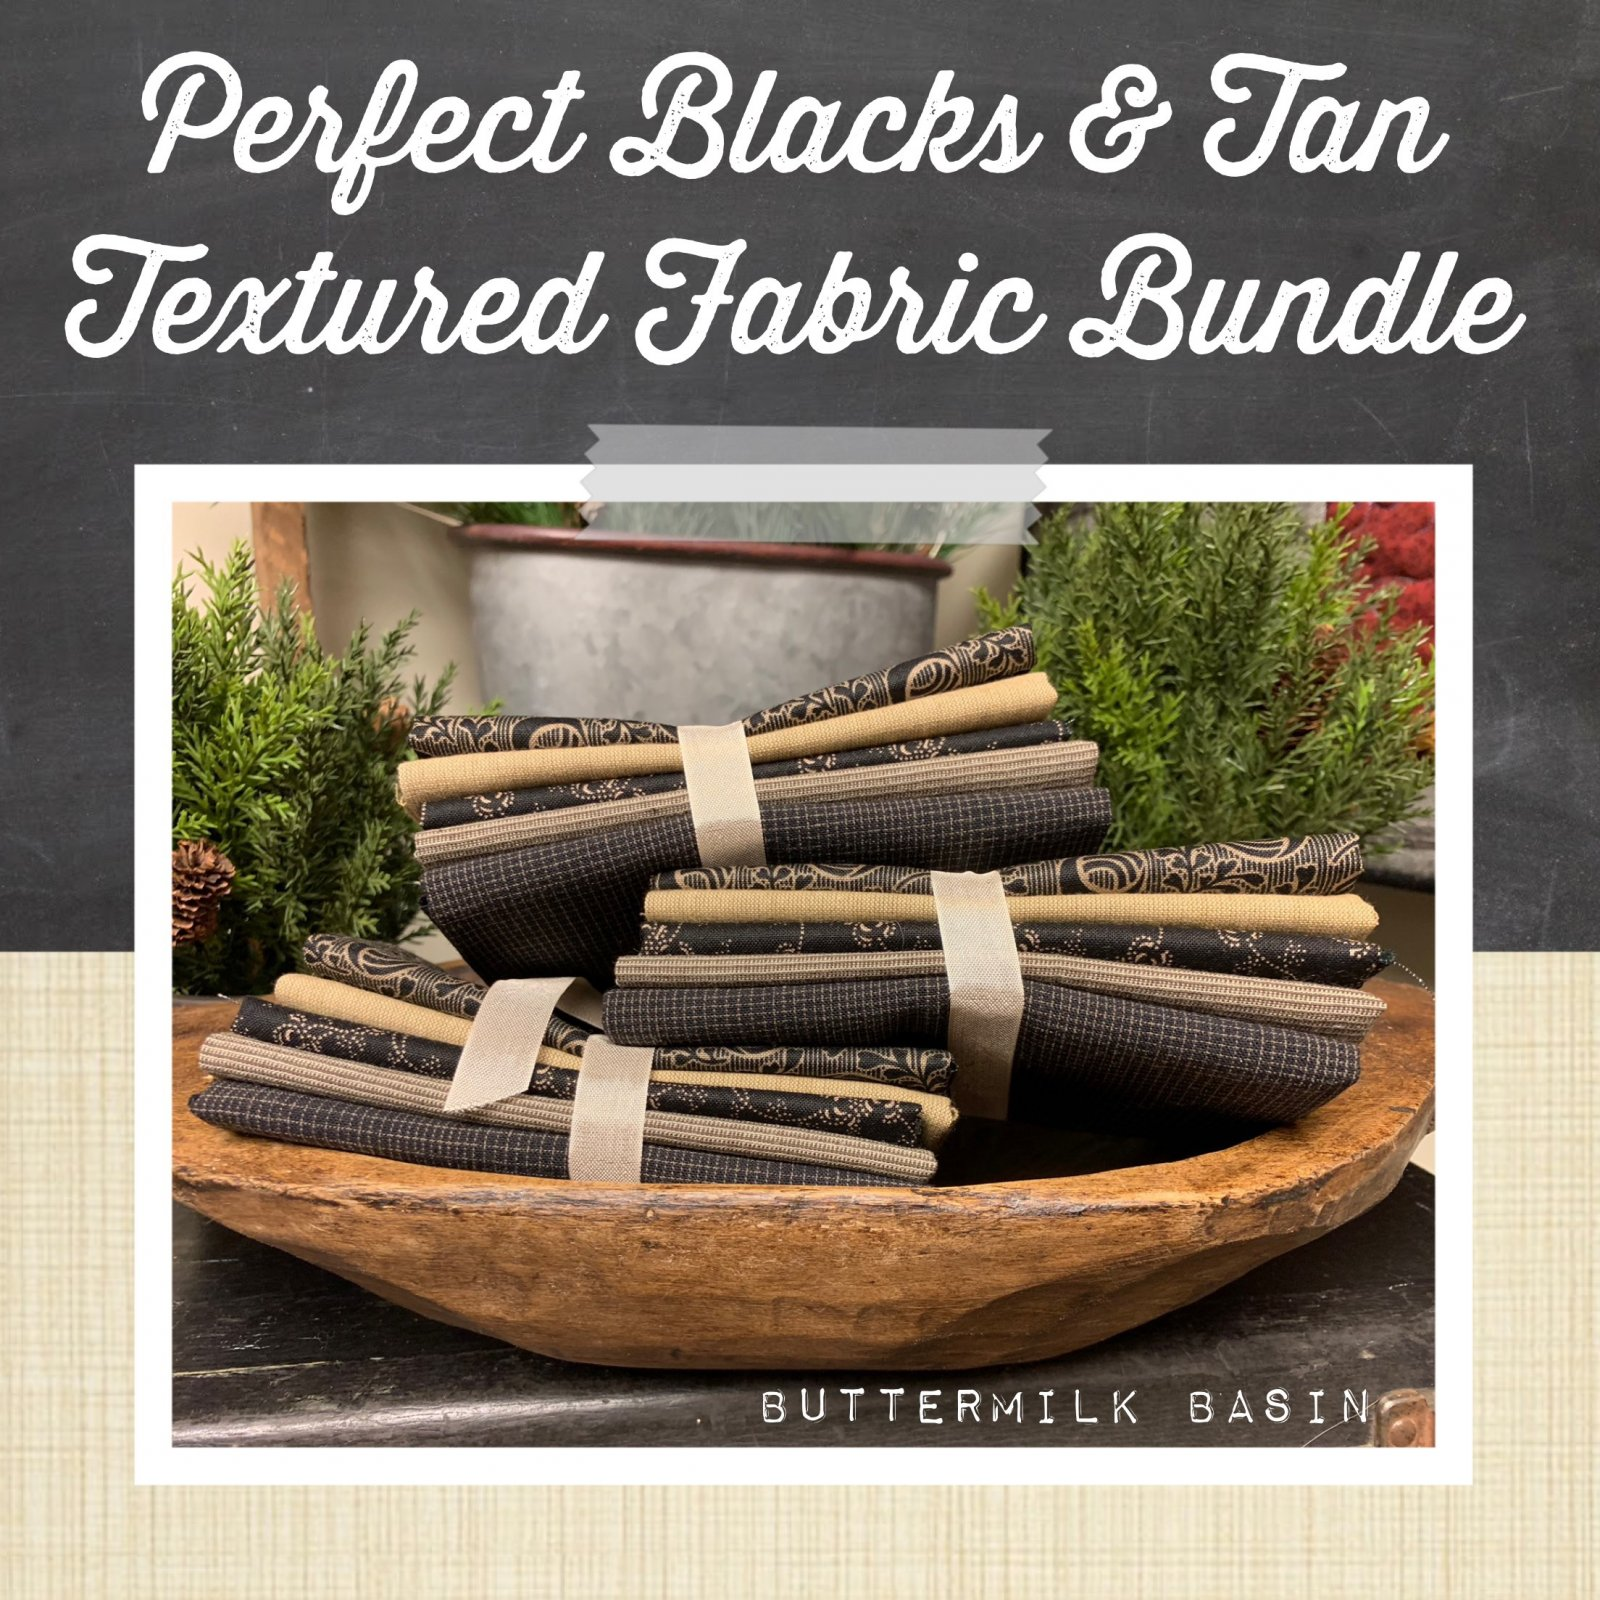 Perfect Blacks & Tans Textured Fabric Bundle